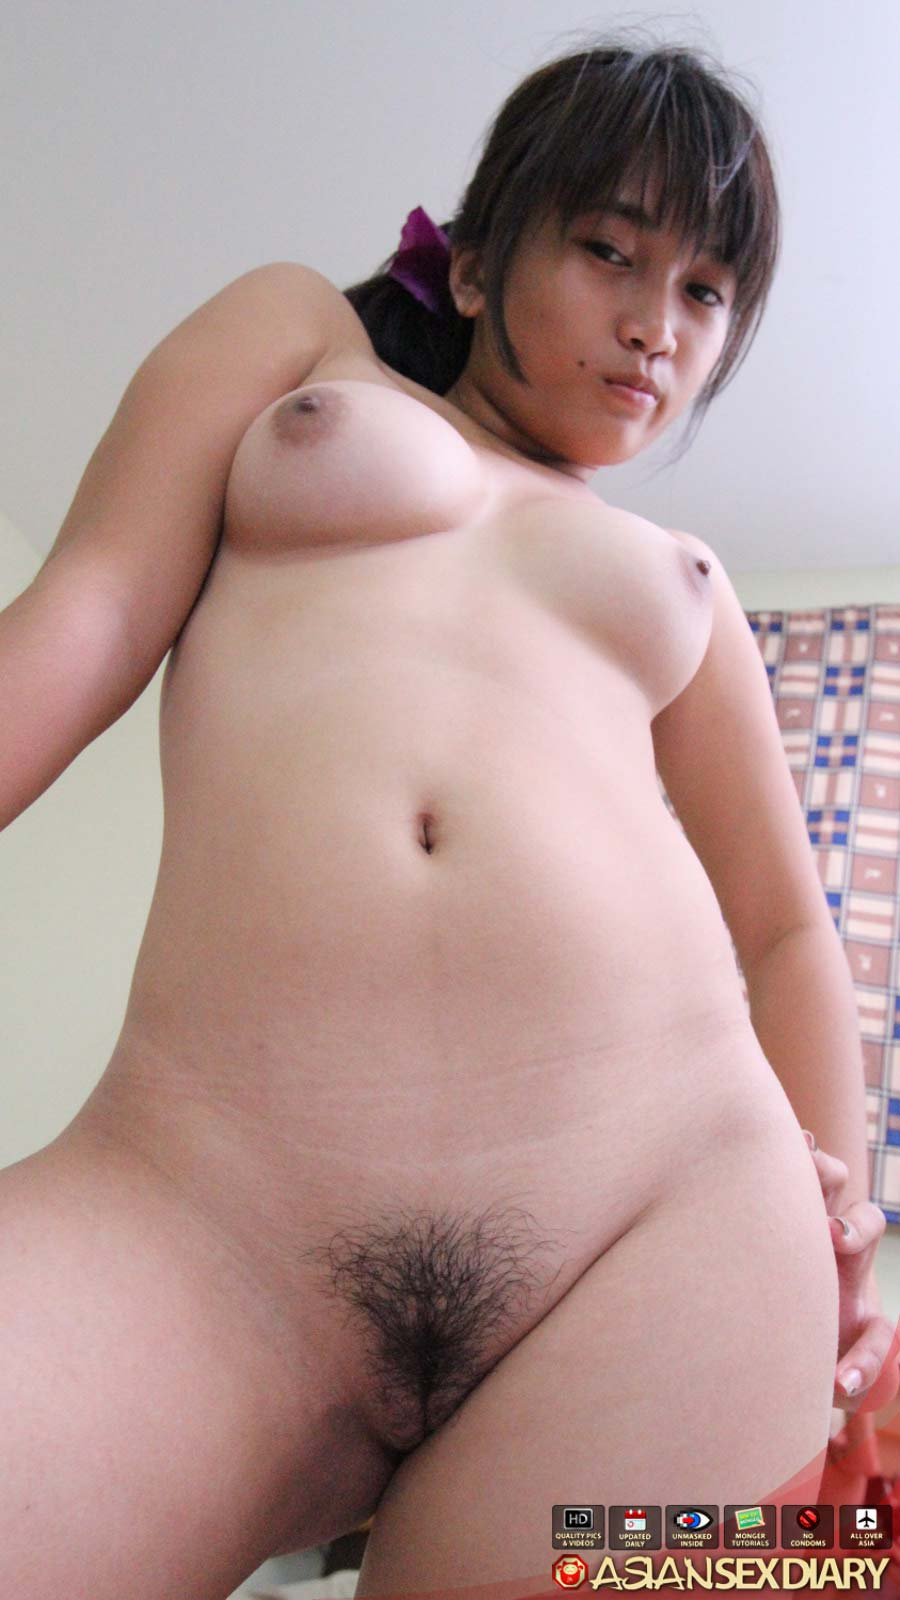 Sexy asian girl with big tits fucked hard 2